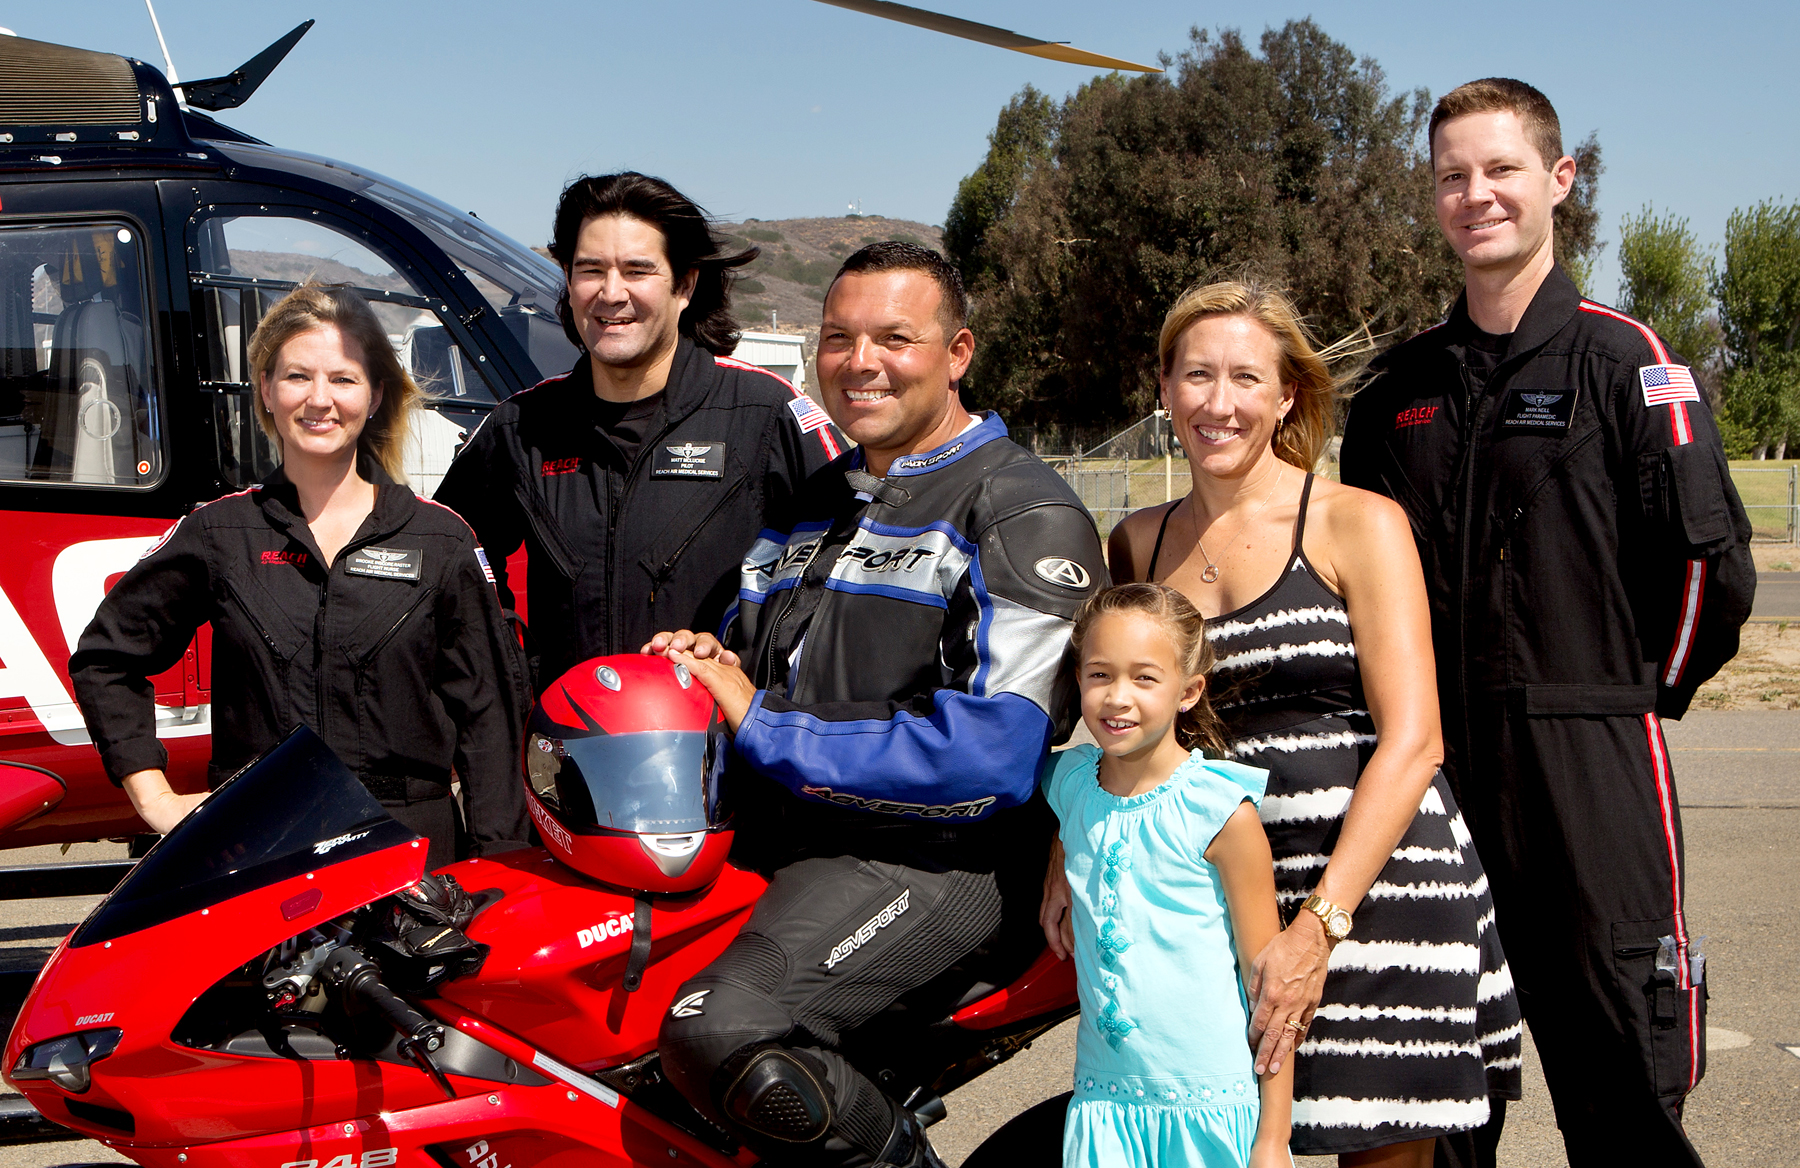 Brian Cortez, on motorcycle, is joined by (left to right) REACH Flight Nurse Brooke Inscore-Raster, Pilot Matt McLuckie, wife Amy, daughter Madison. and REACH Flight Paramedic Mark Neill.